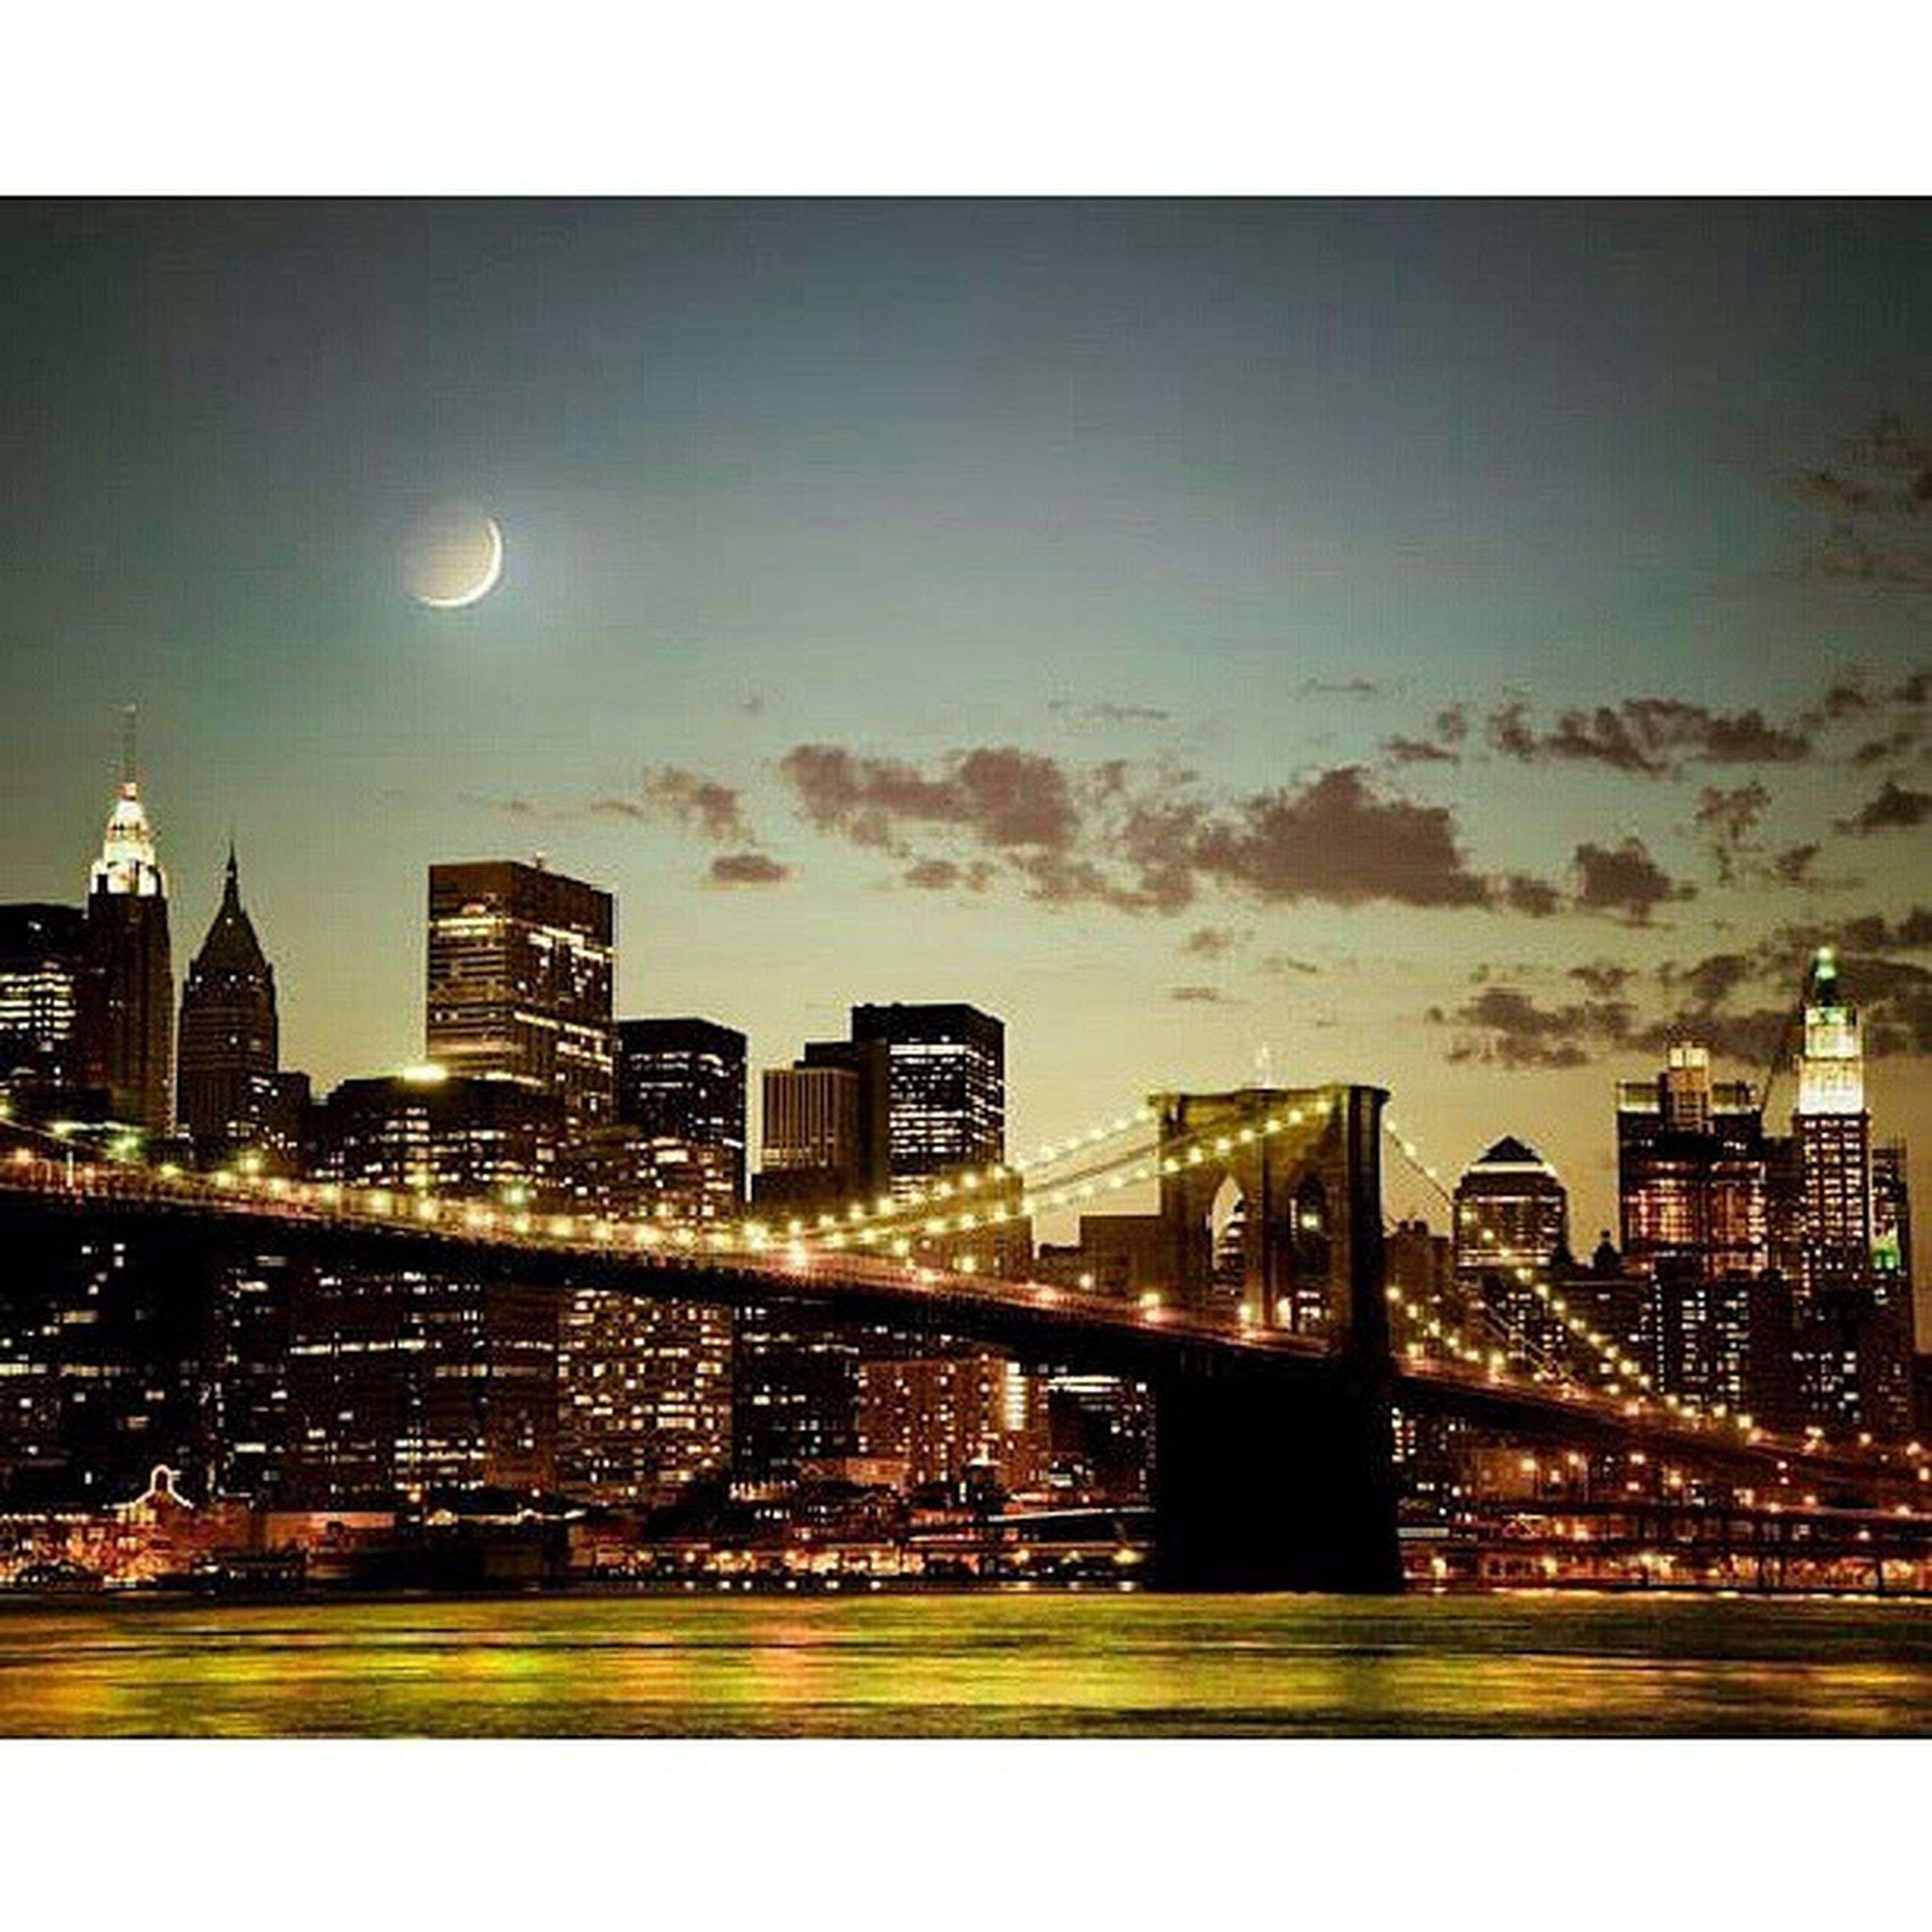 illuminated, architecture, city, built structure, cityscape, building exterior, night, transfer print, auto post production filter, sky, river, skyscraper, water, modern, city life, moon, connection, waterfront, bridge - man made structure, urban skyline